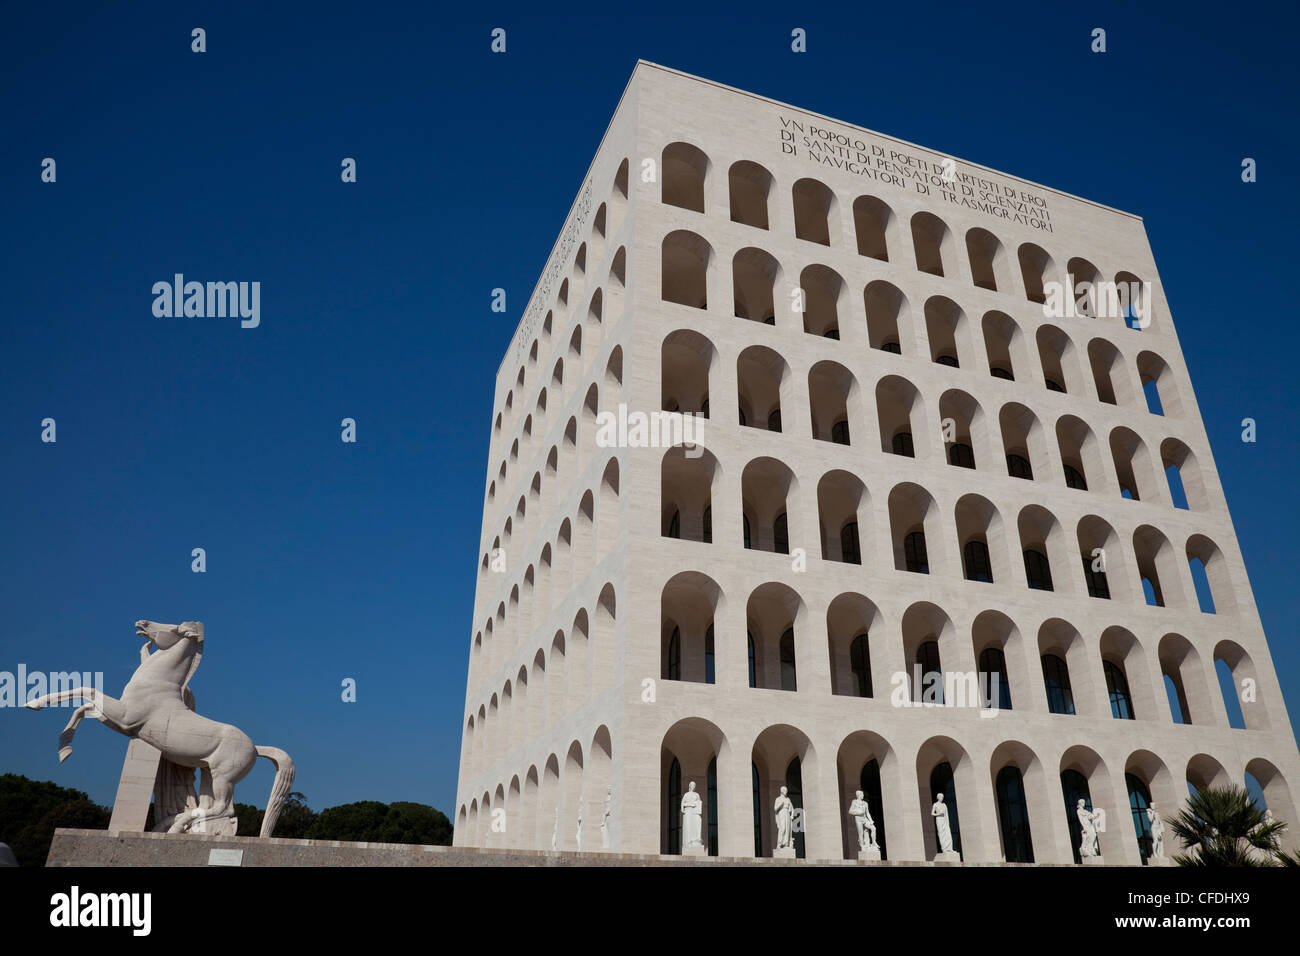 Palazzo della Civilta Italiana (Square Colosseum), EUR district, Rome, Lazio, Italy, Europe - Stock Image